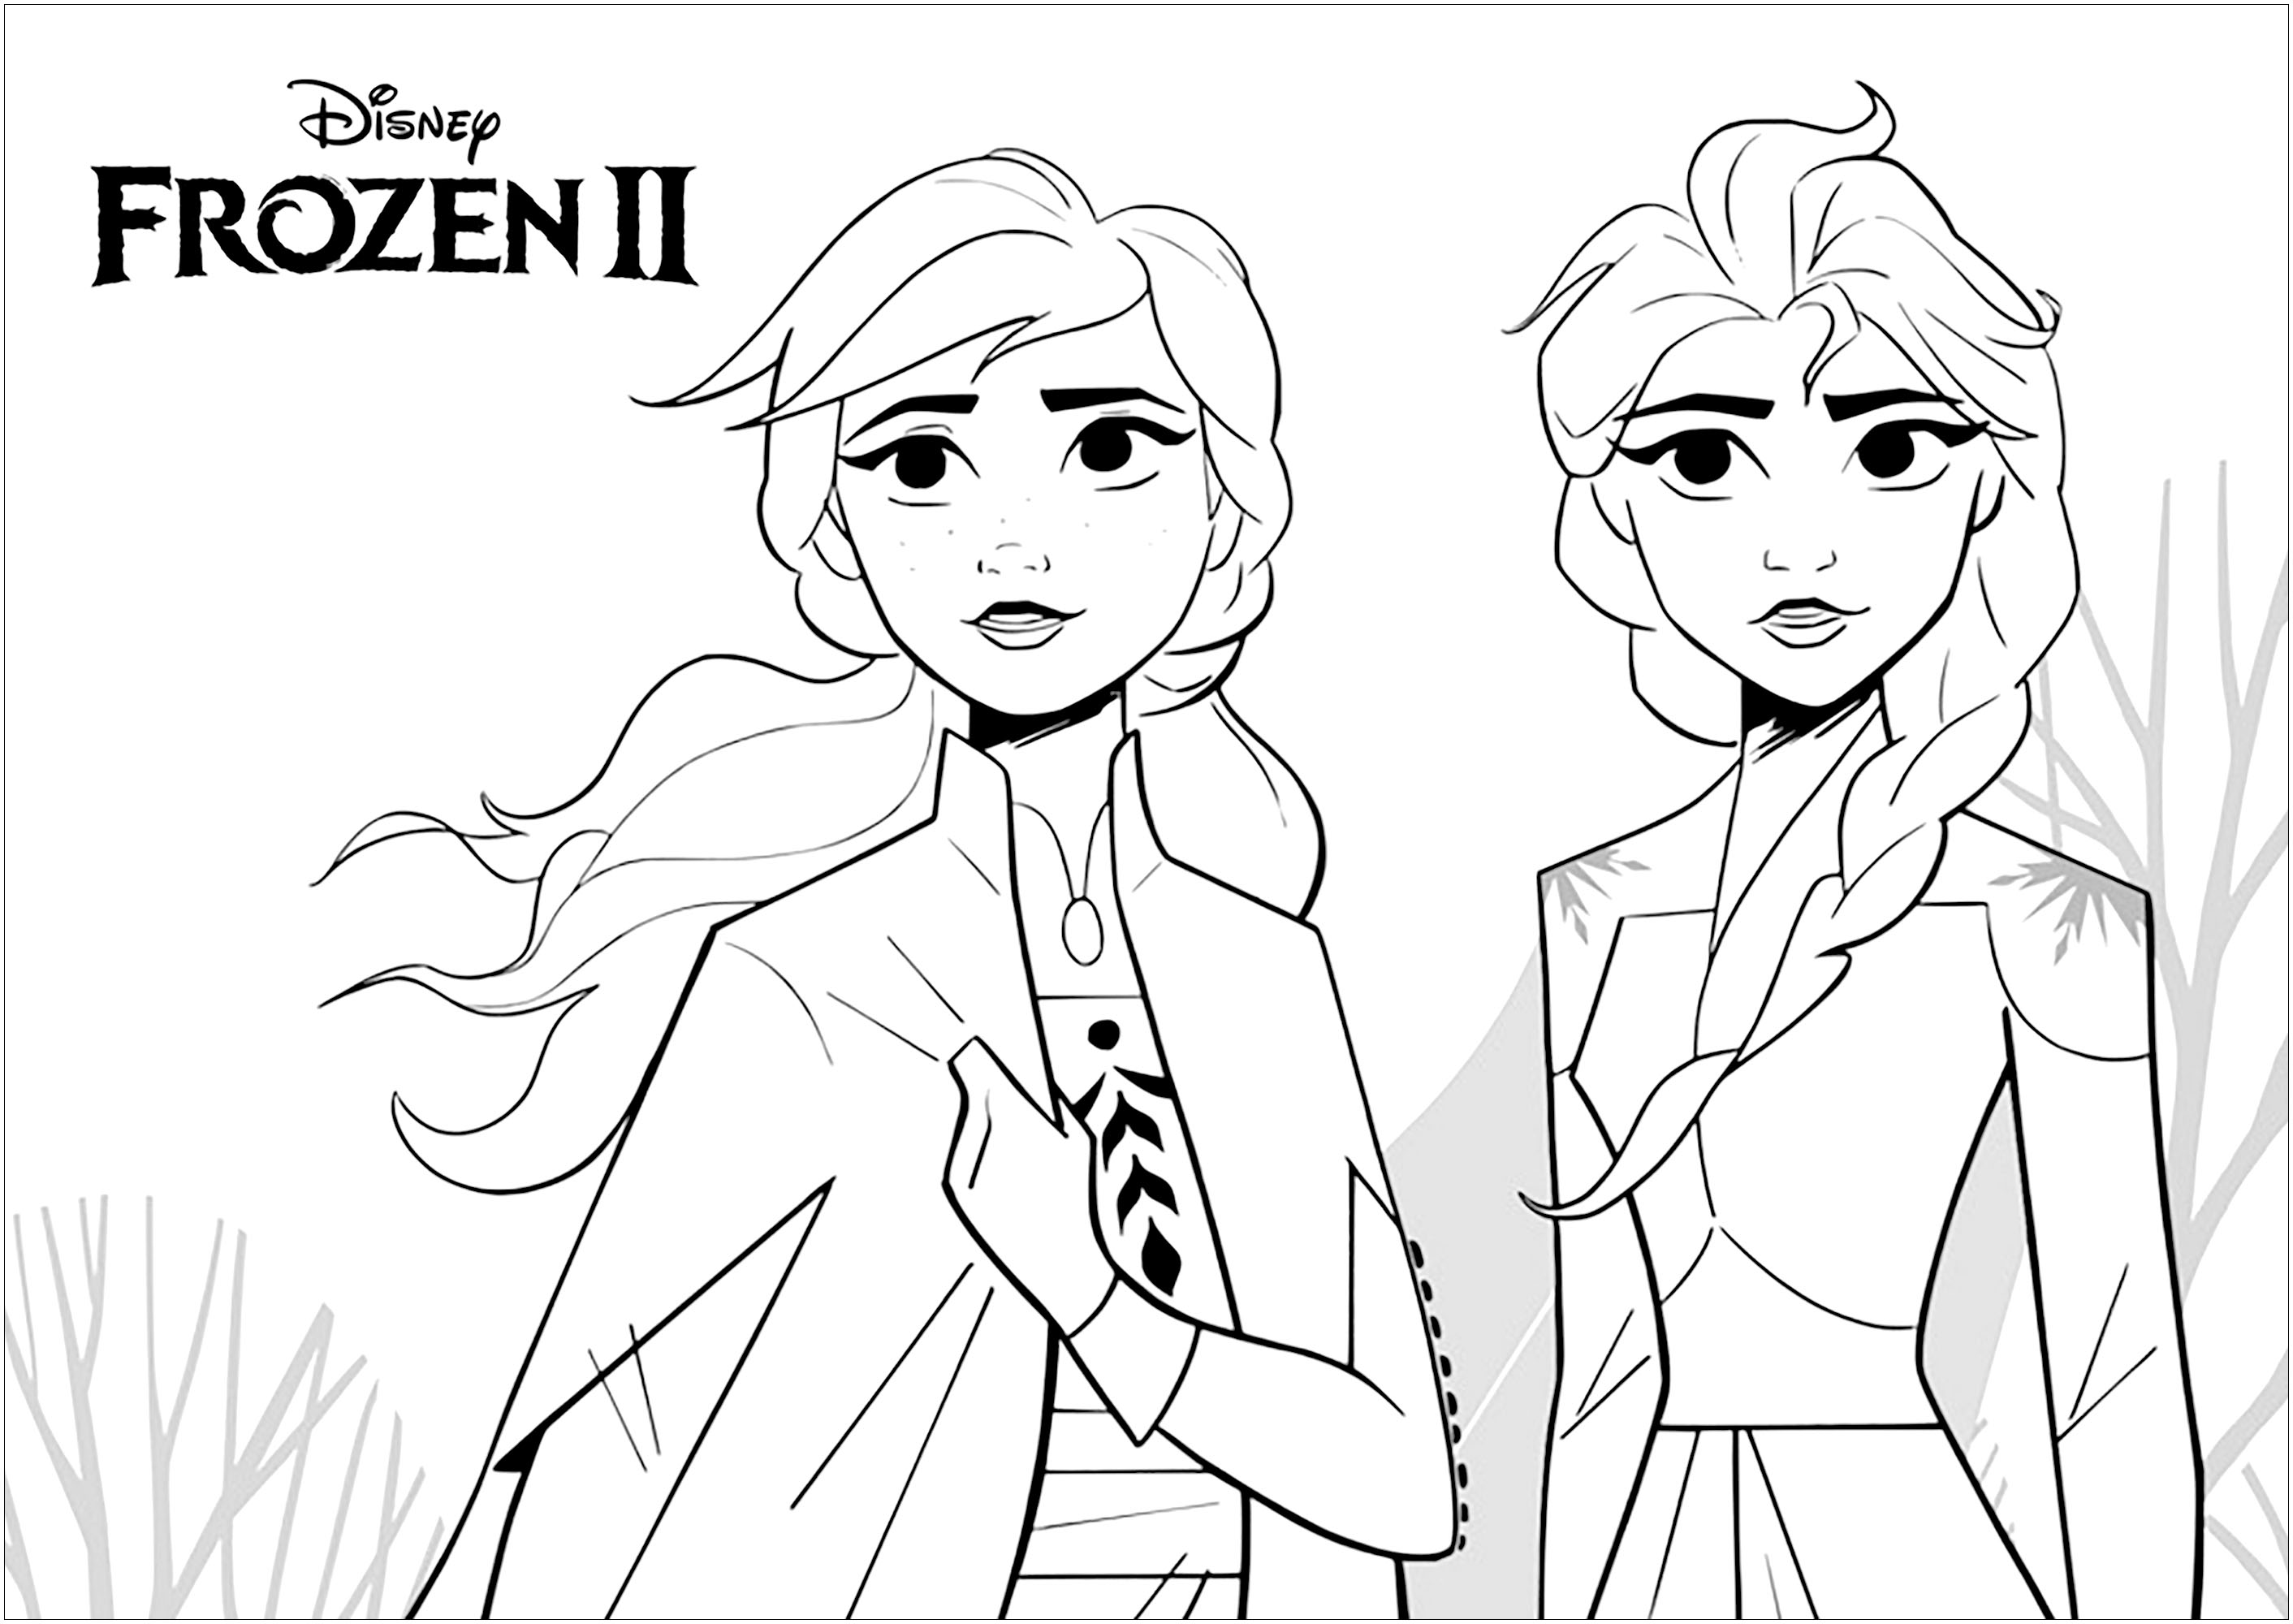 frozen movie coloring pages disney movie princesses quotfrozenquot printable coloring pages pages frozen movie coloring